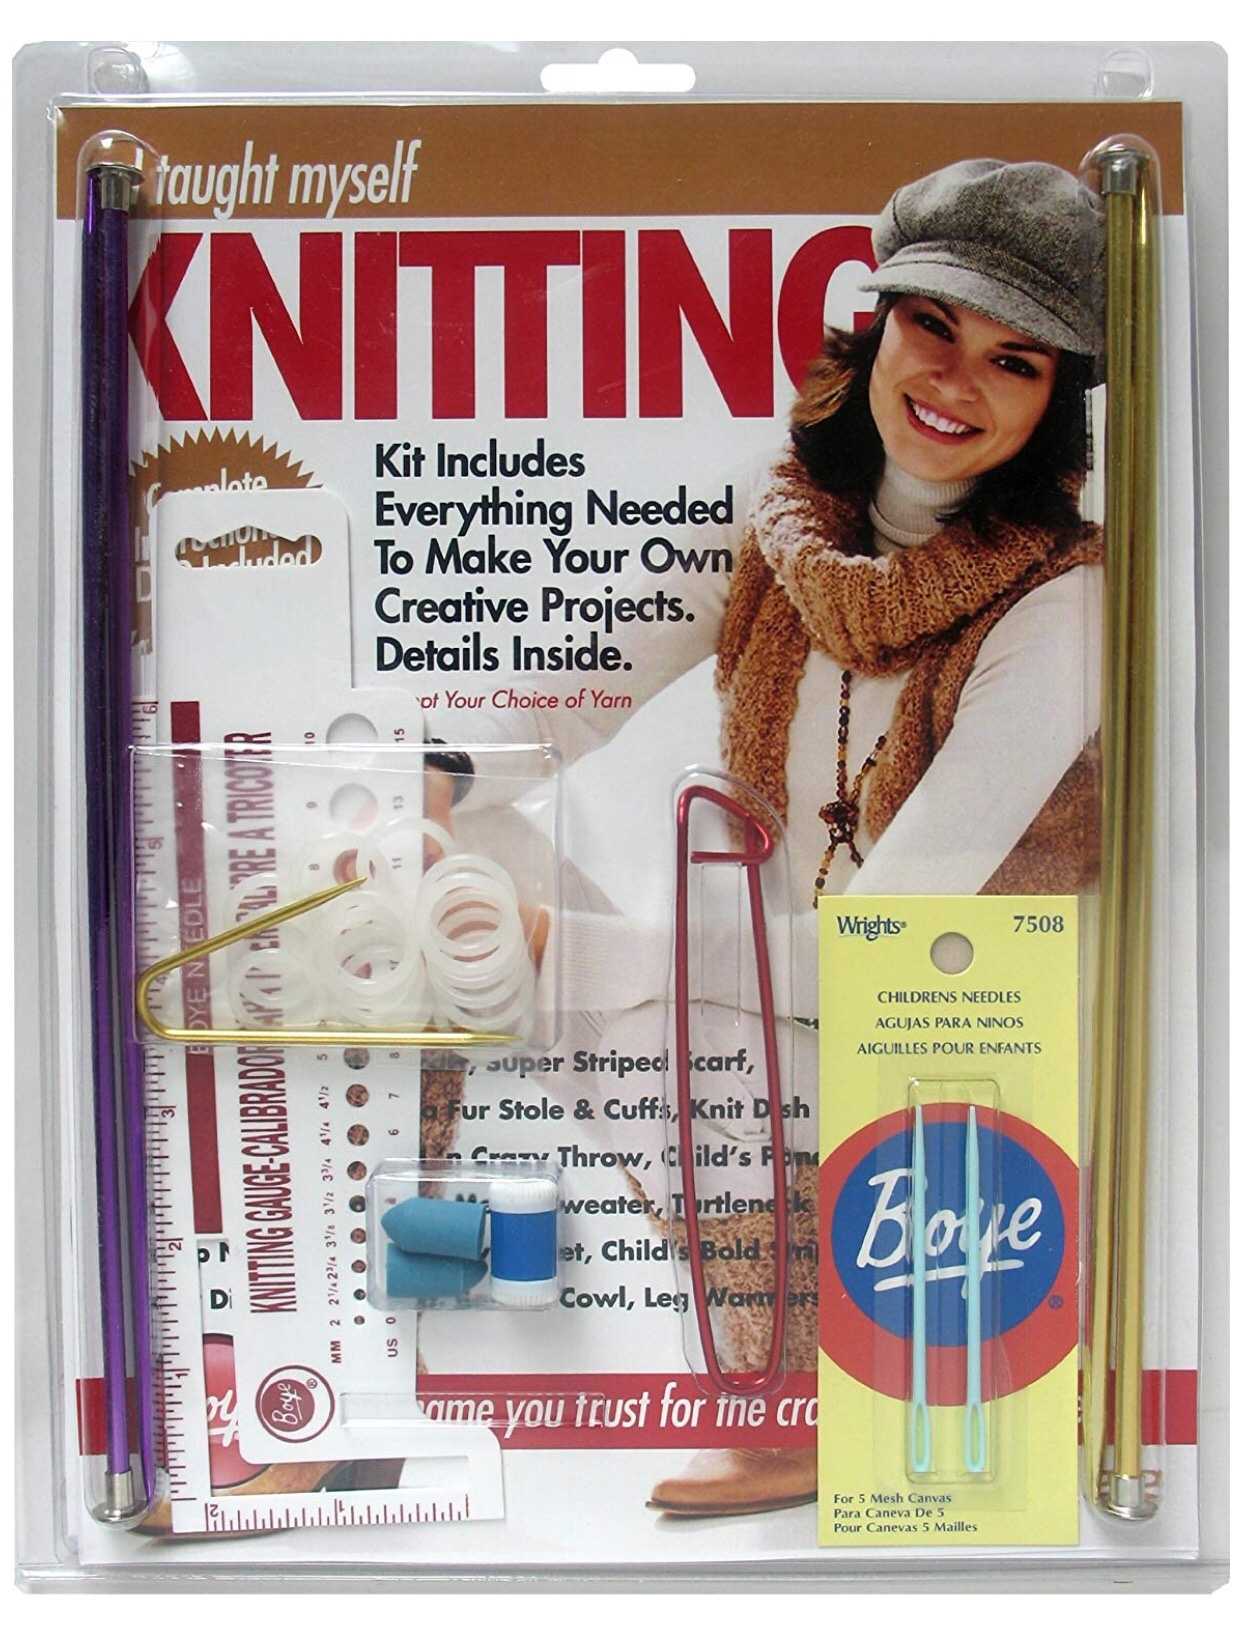 53d31dd09 What are your top go-to knitting books  - Quora